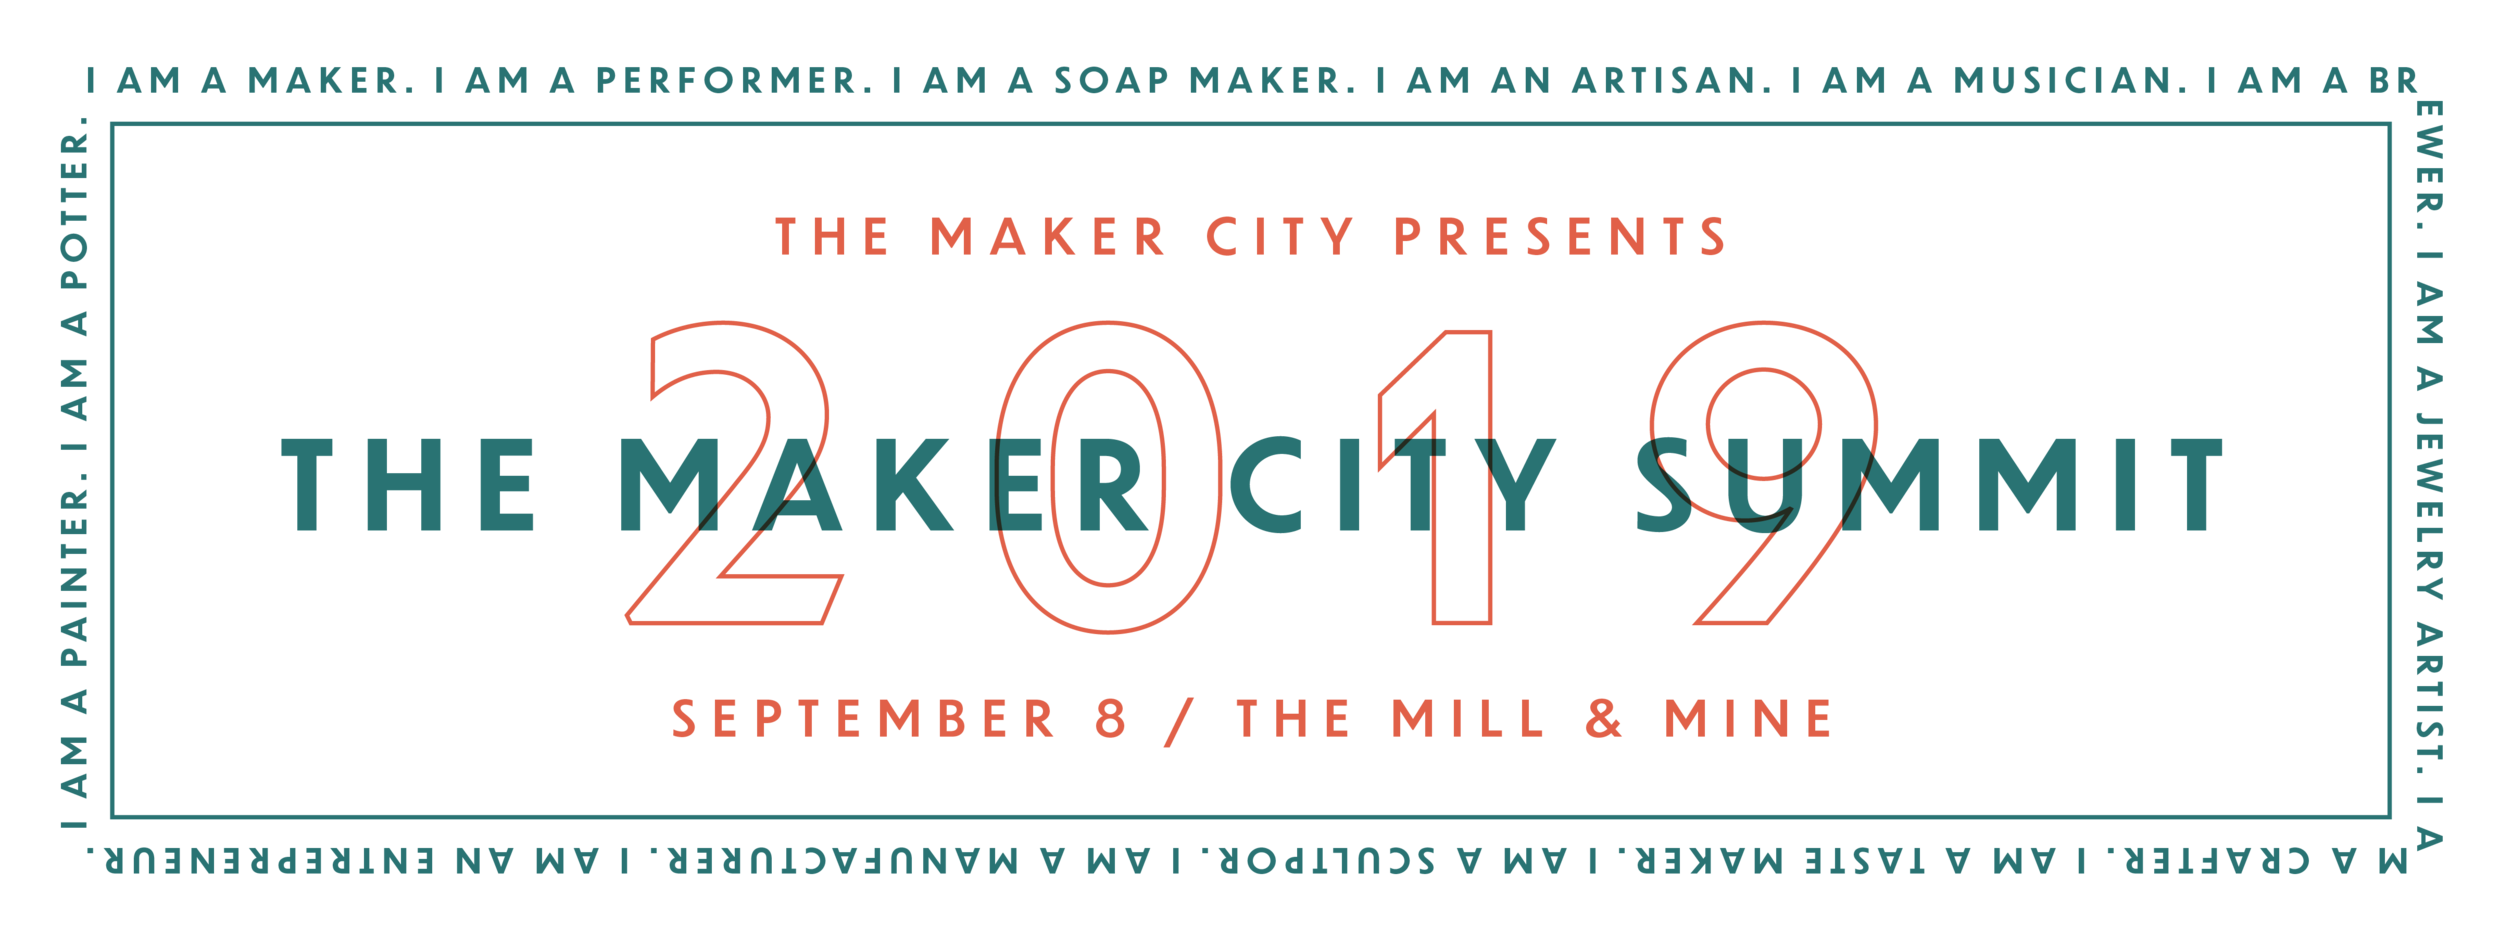 The Maker City Summit 2019